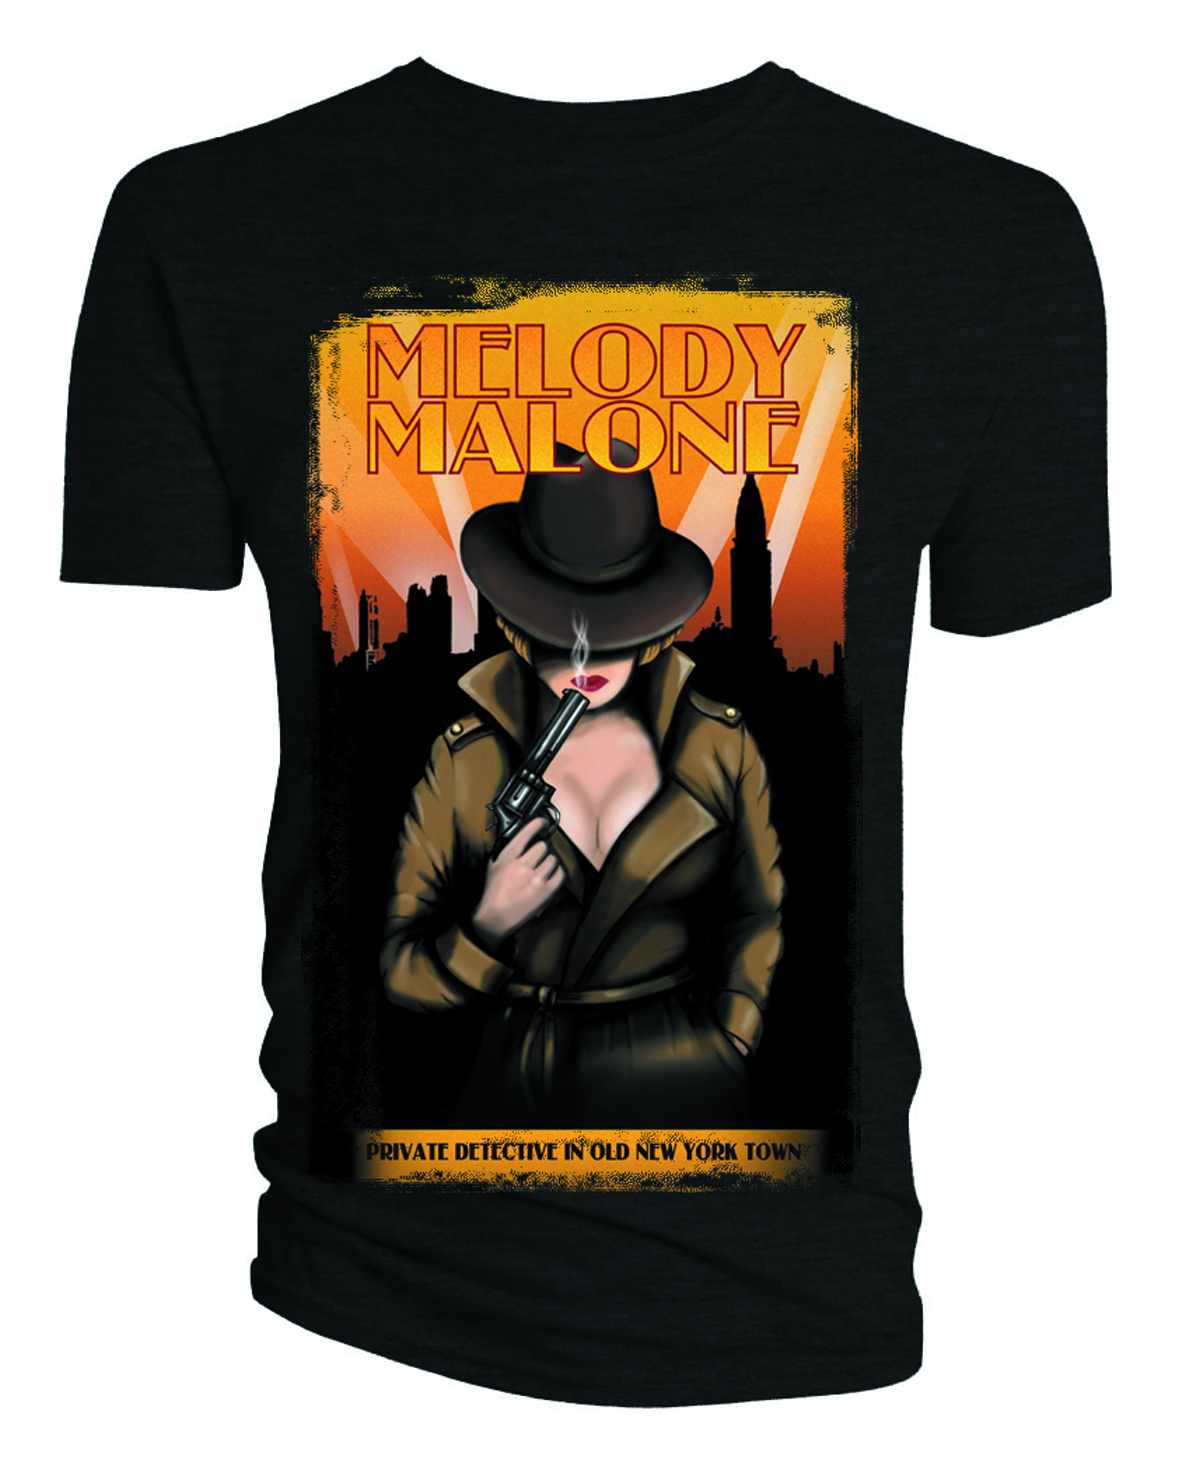 DOCTOR WHO MELODY MALONE BLK T/S SM